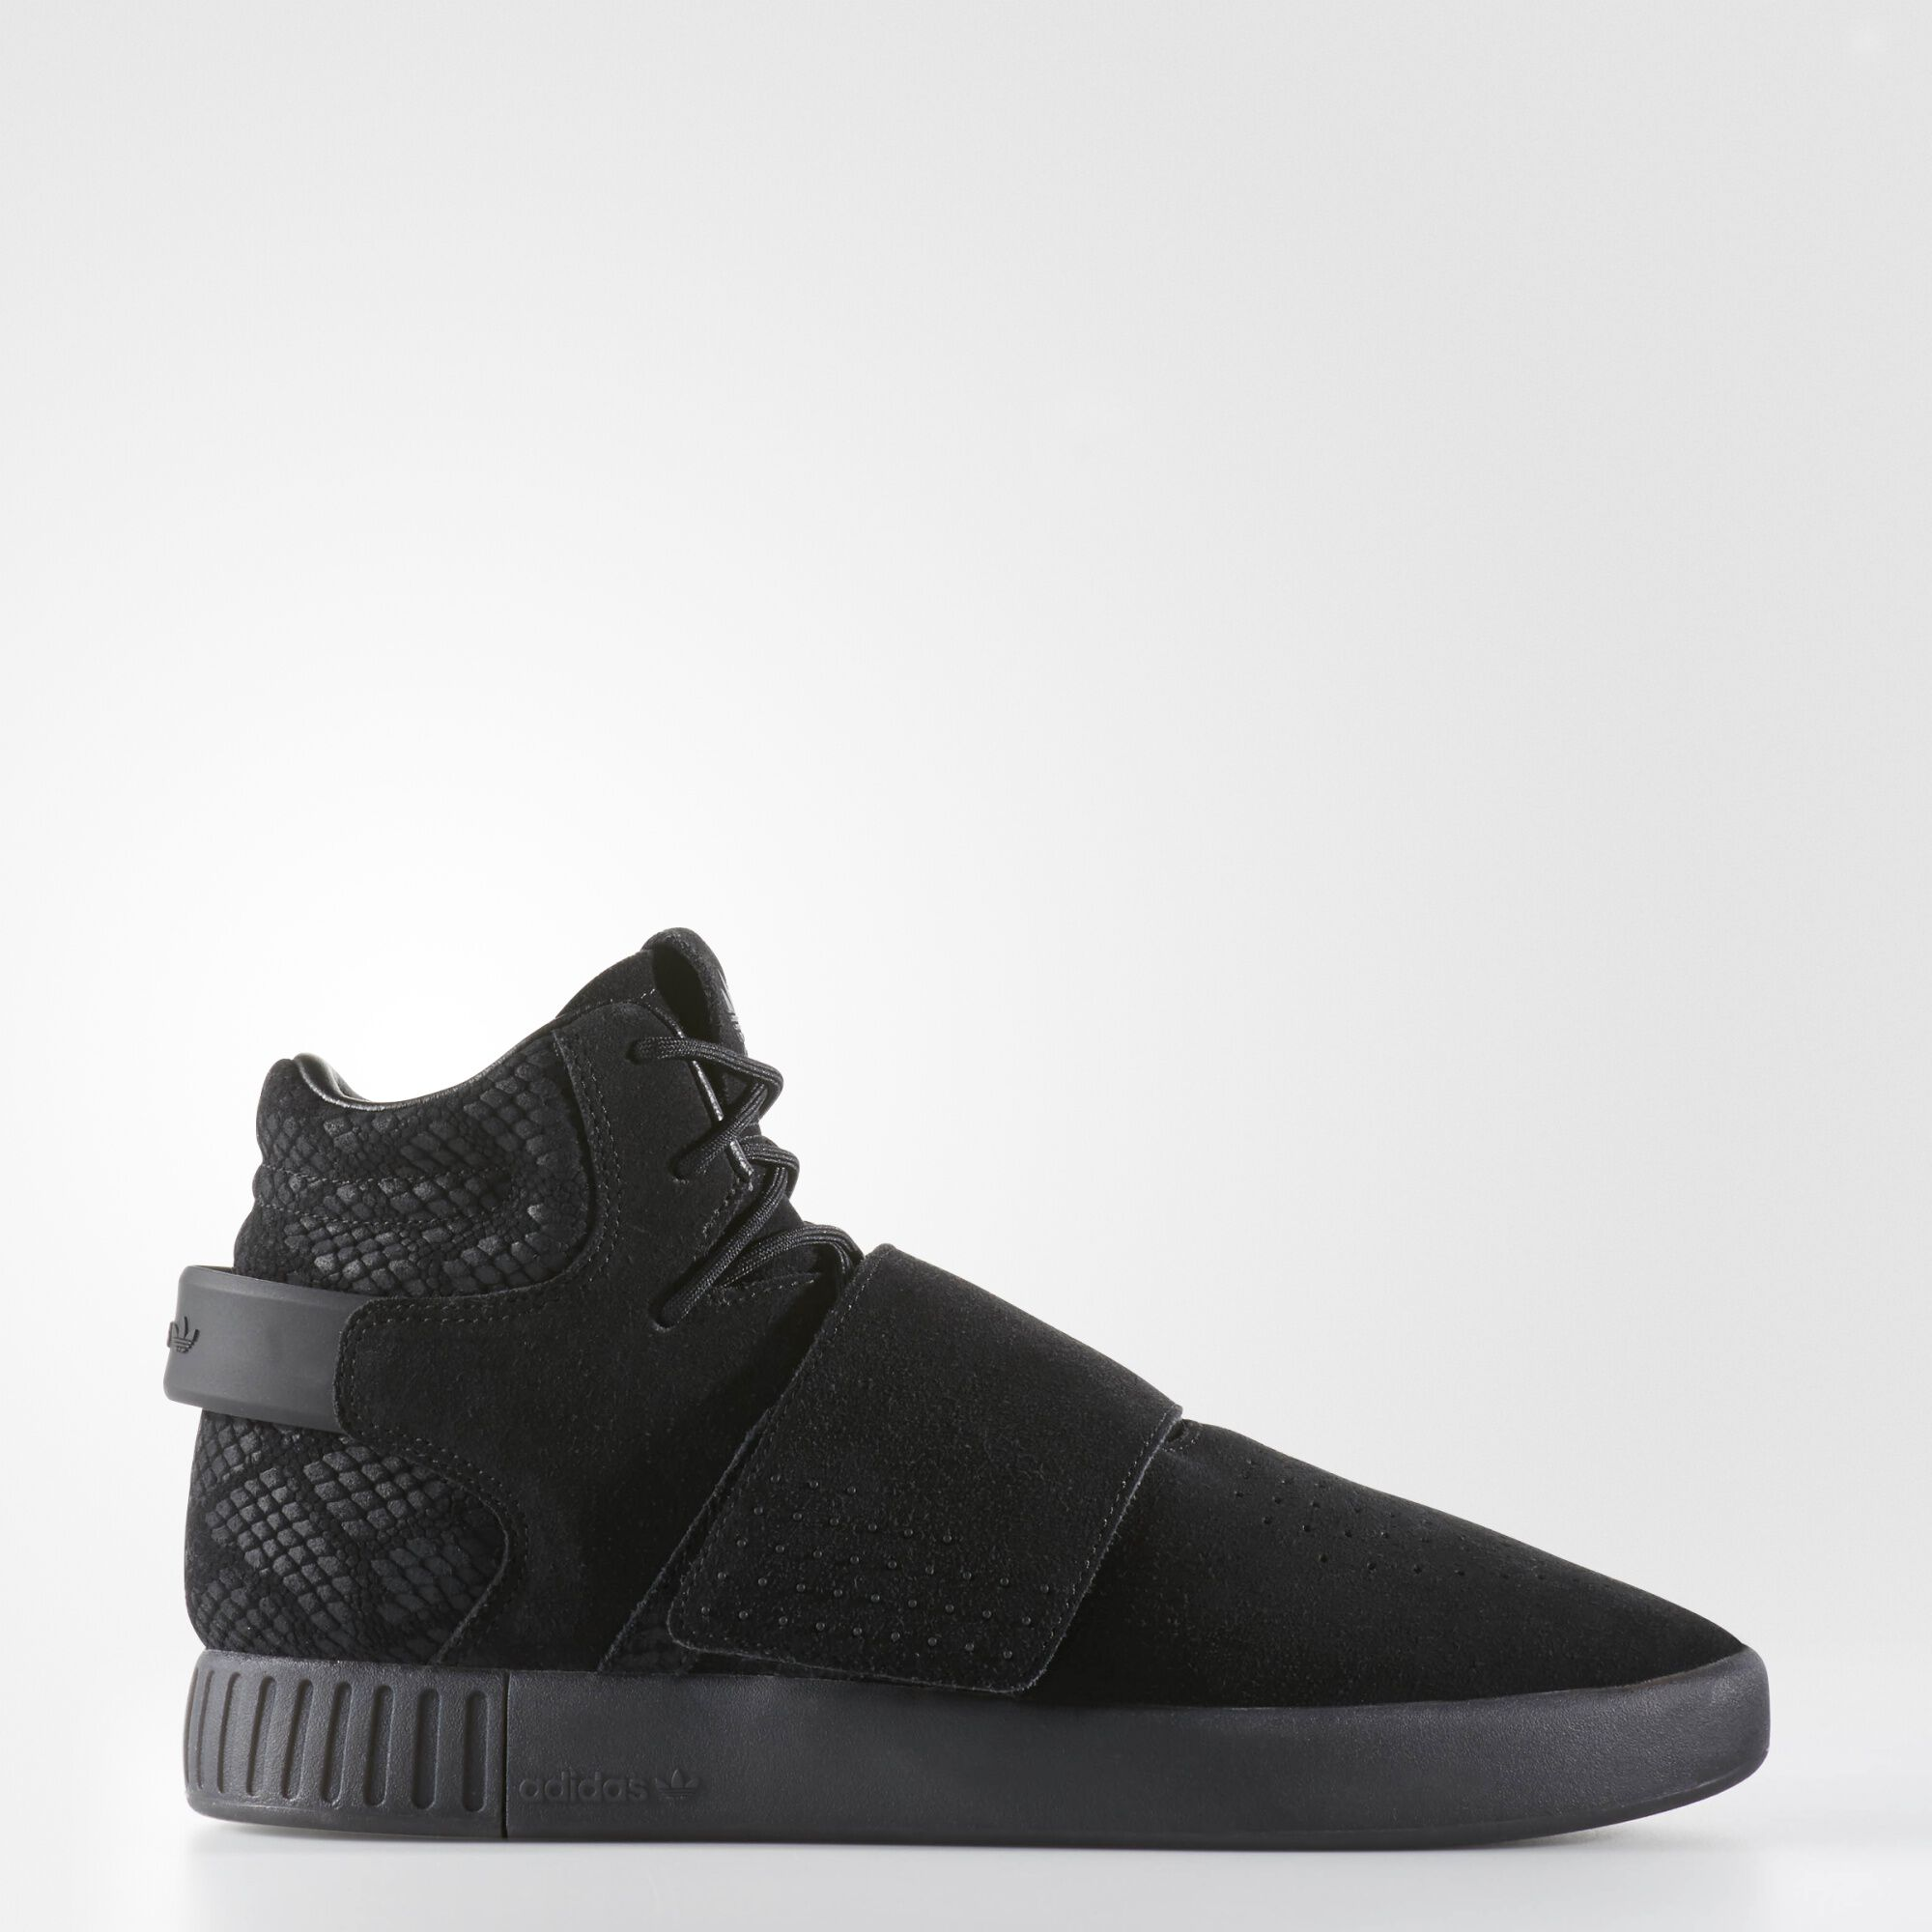 Adidas Tubular Black Price